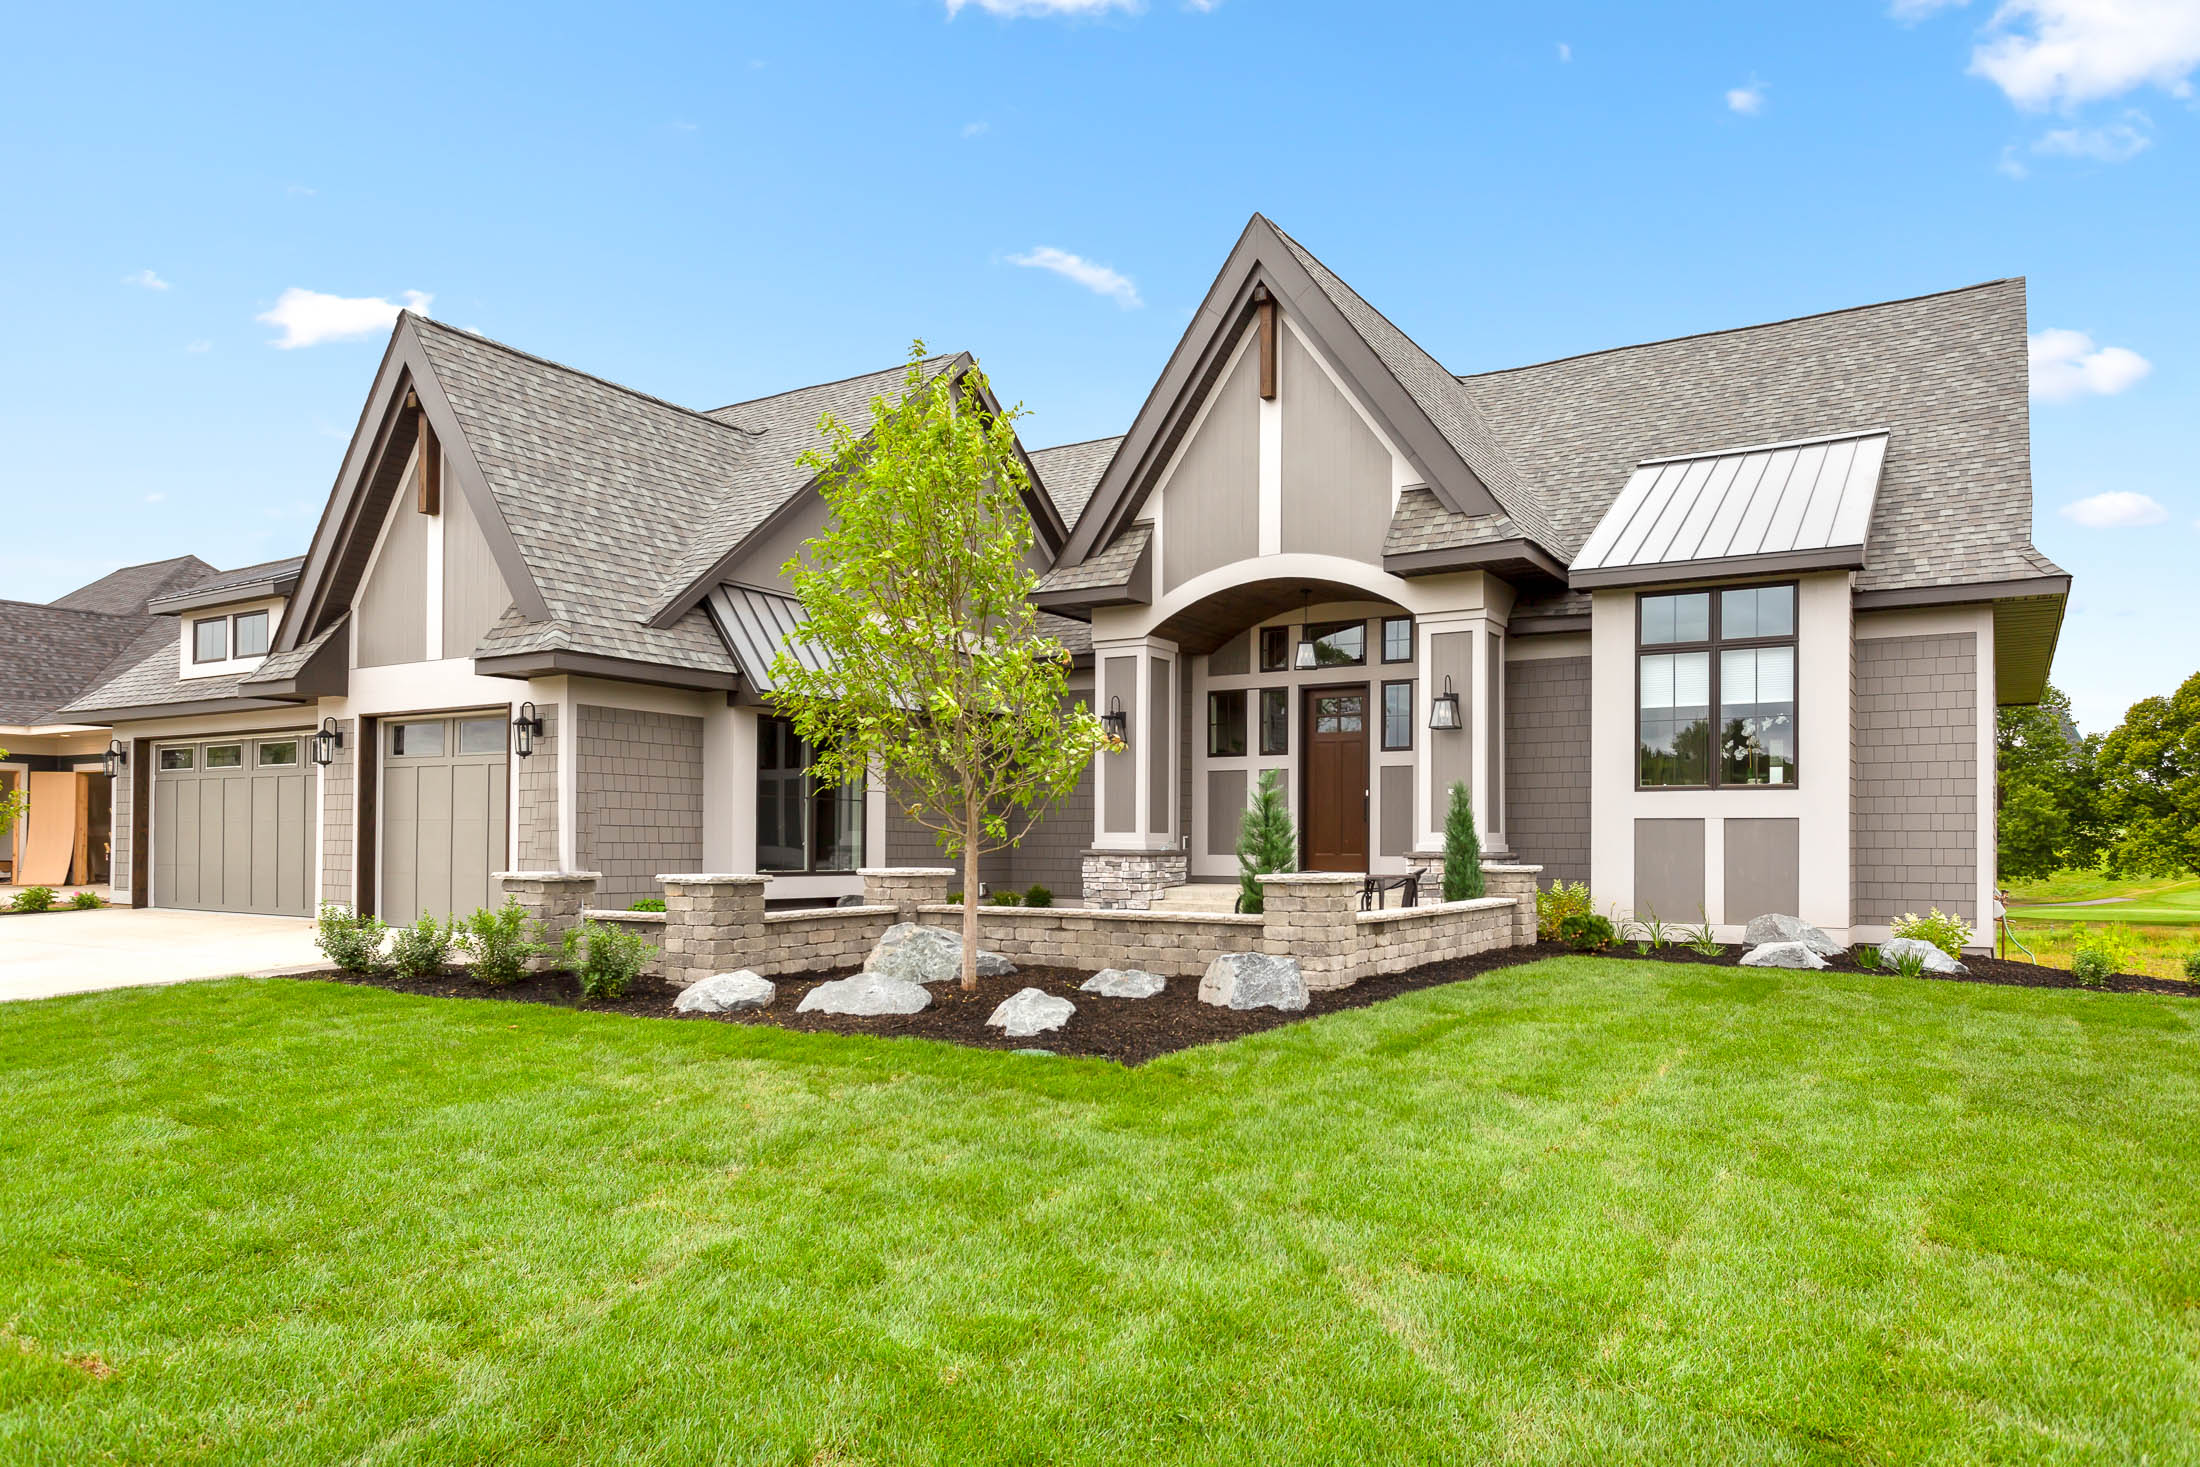 Parade of Homes Photos